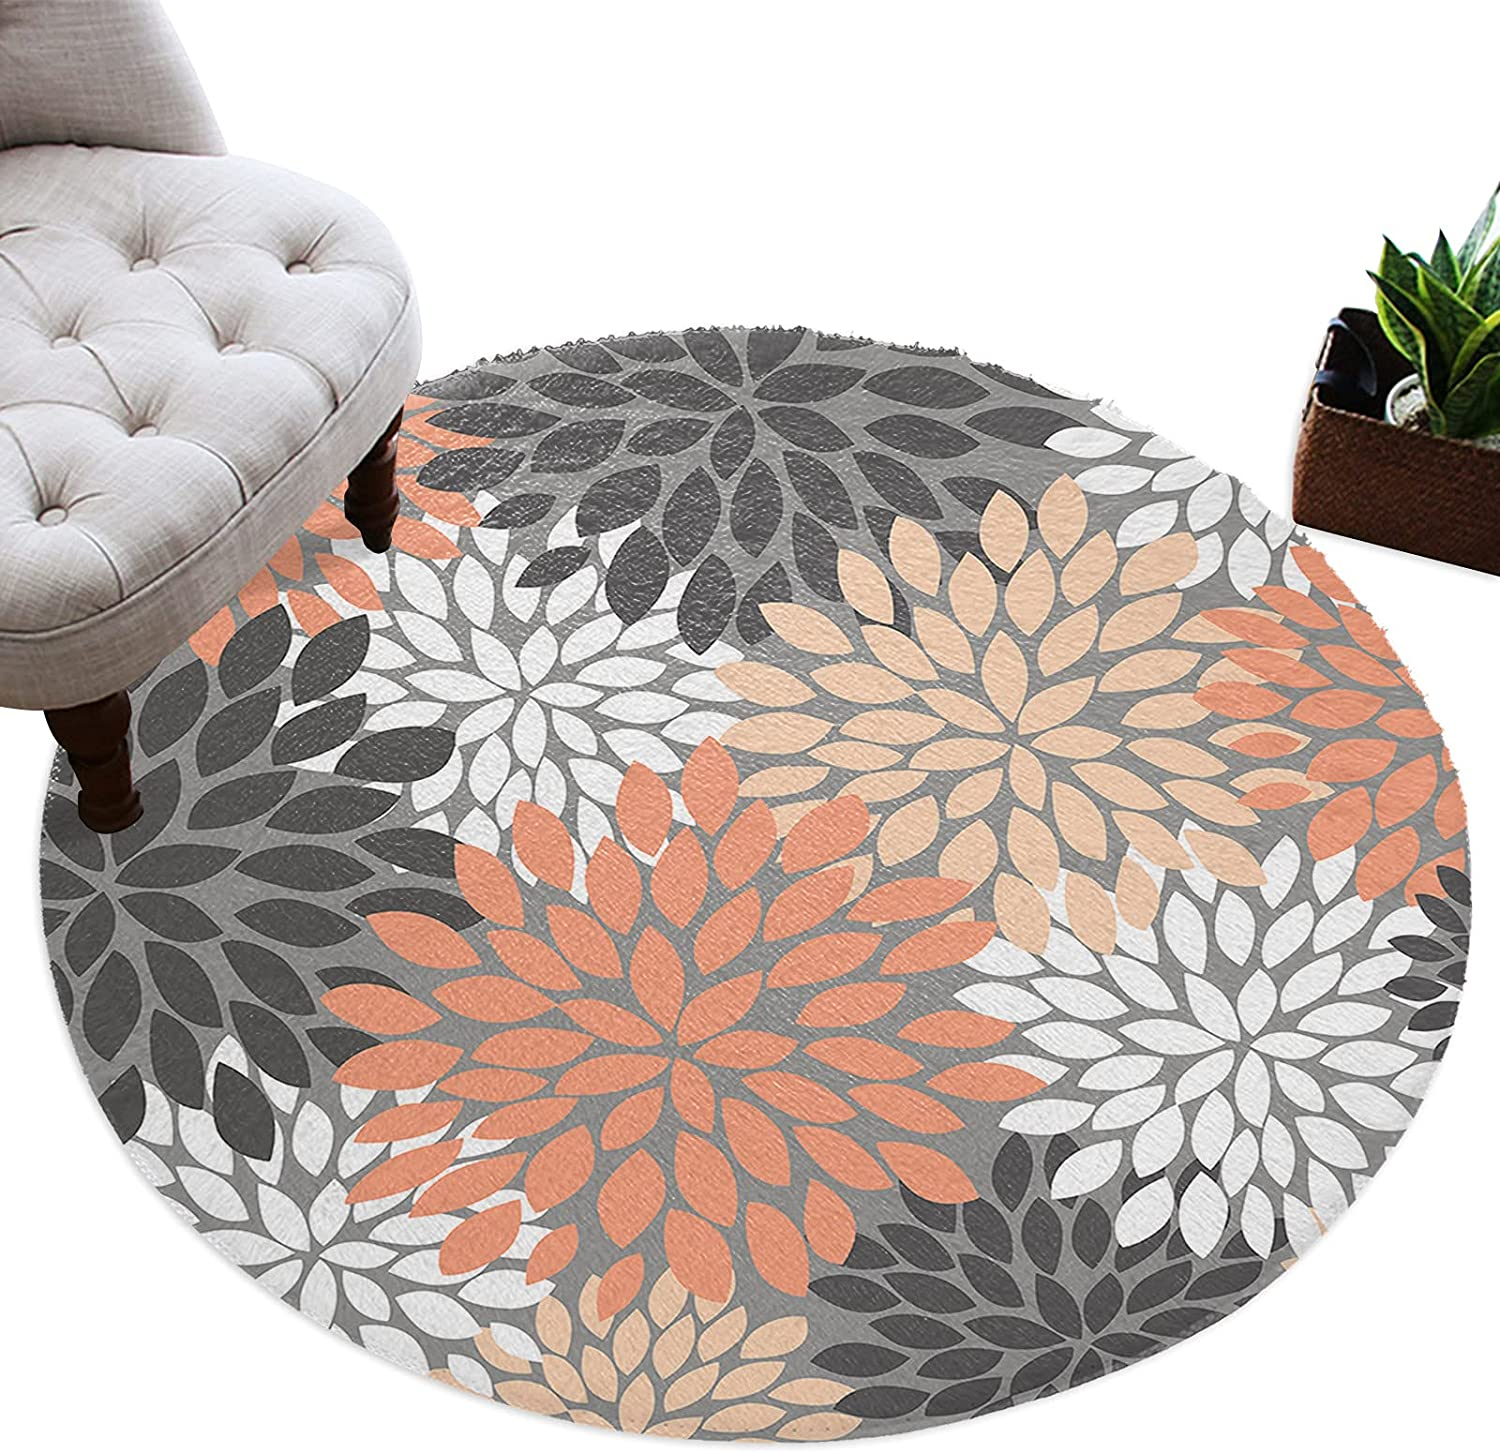 Meet 1998 Round Area Rug Same day shipping Soft Don't miss the campaign Floormat Throw Circle Dahlia Rugs